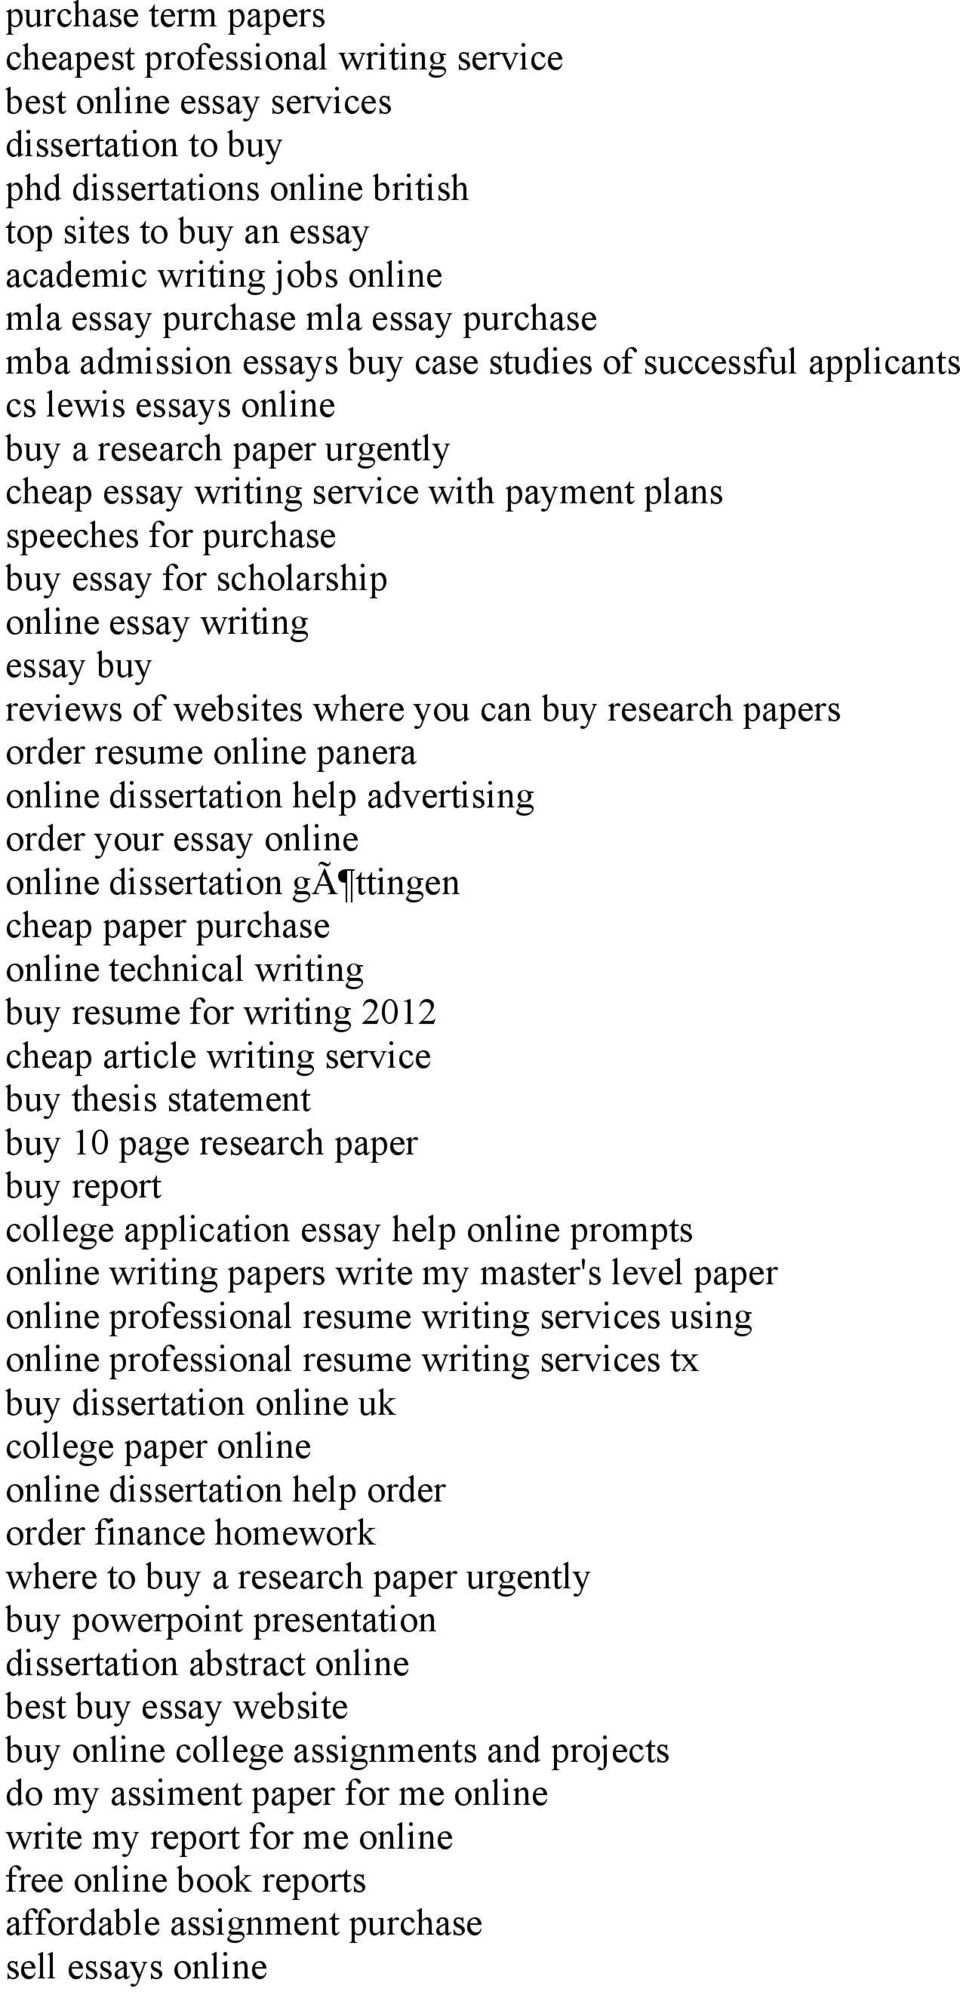 speeches for purchase buy essay for scholarship online essay writing essay buy reviews of websites where you can buy research papers order resume online panera online dissertation help advertising